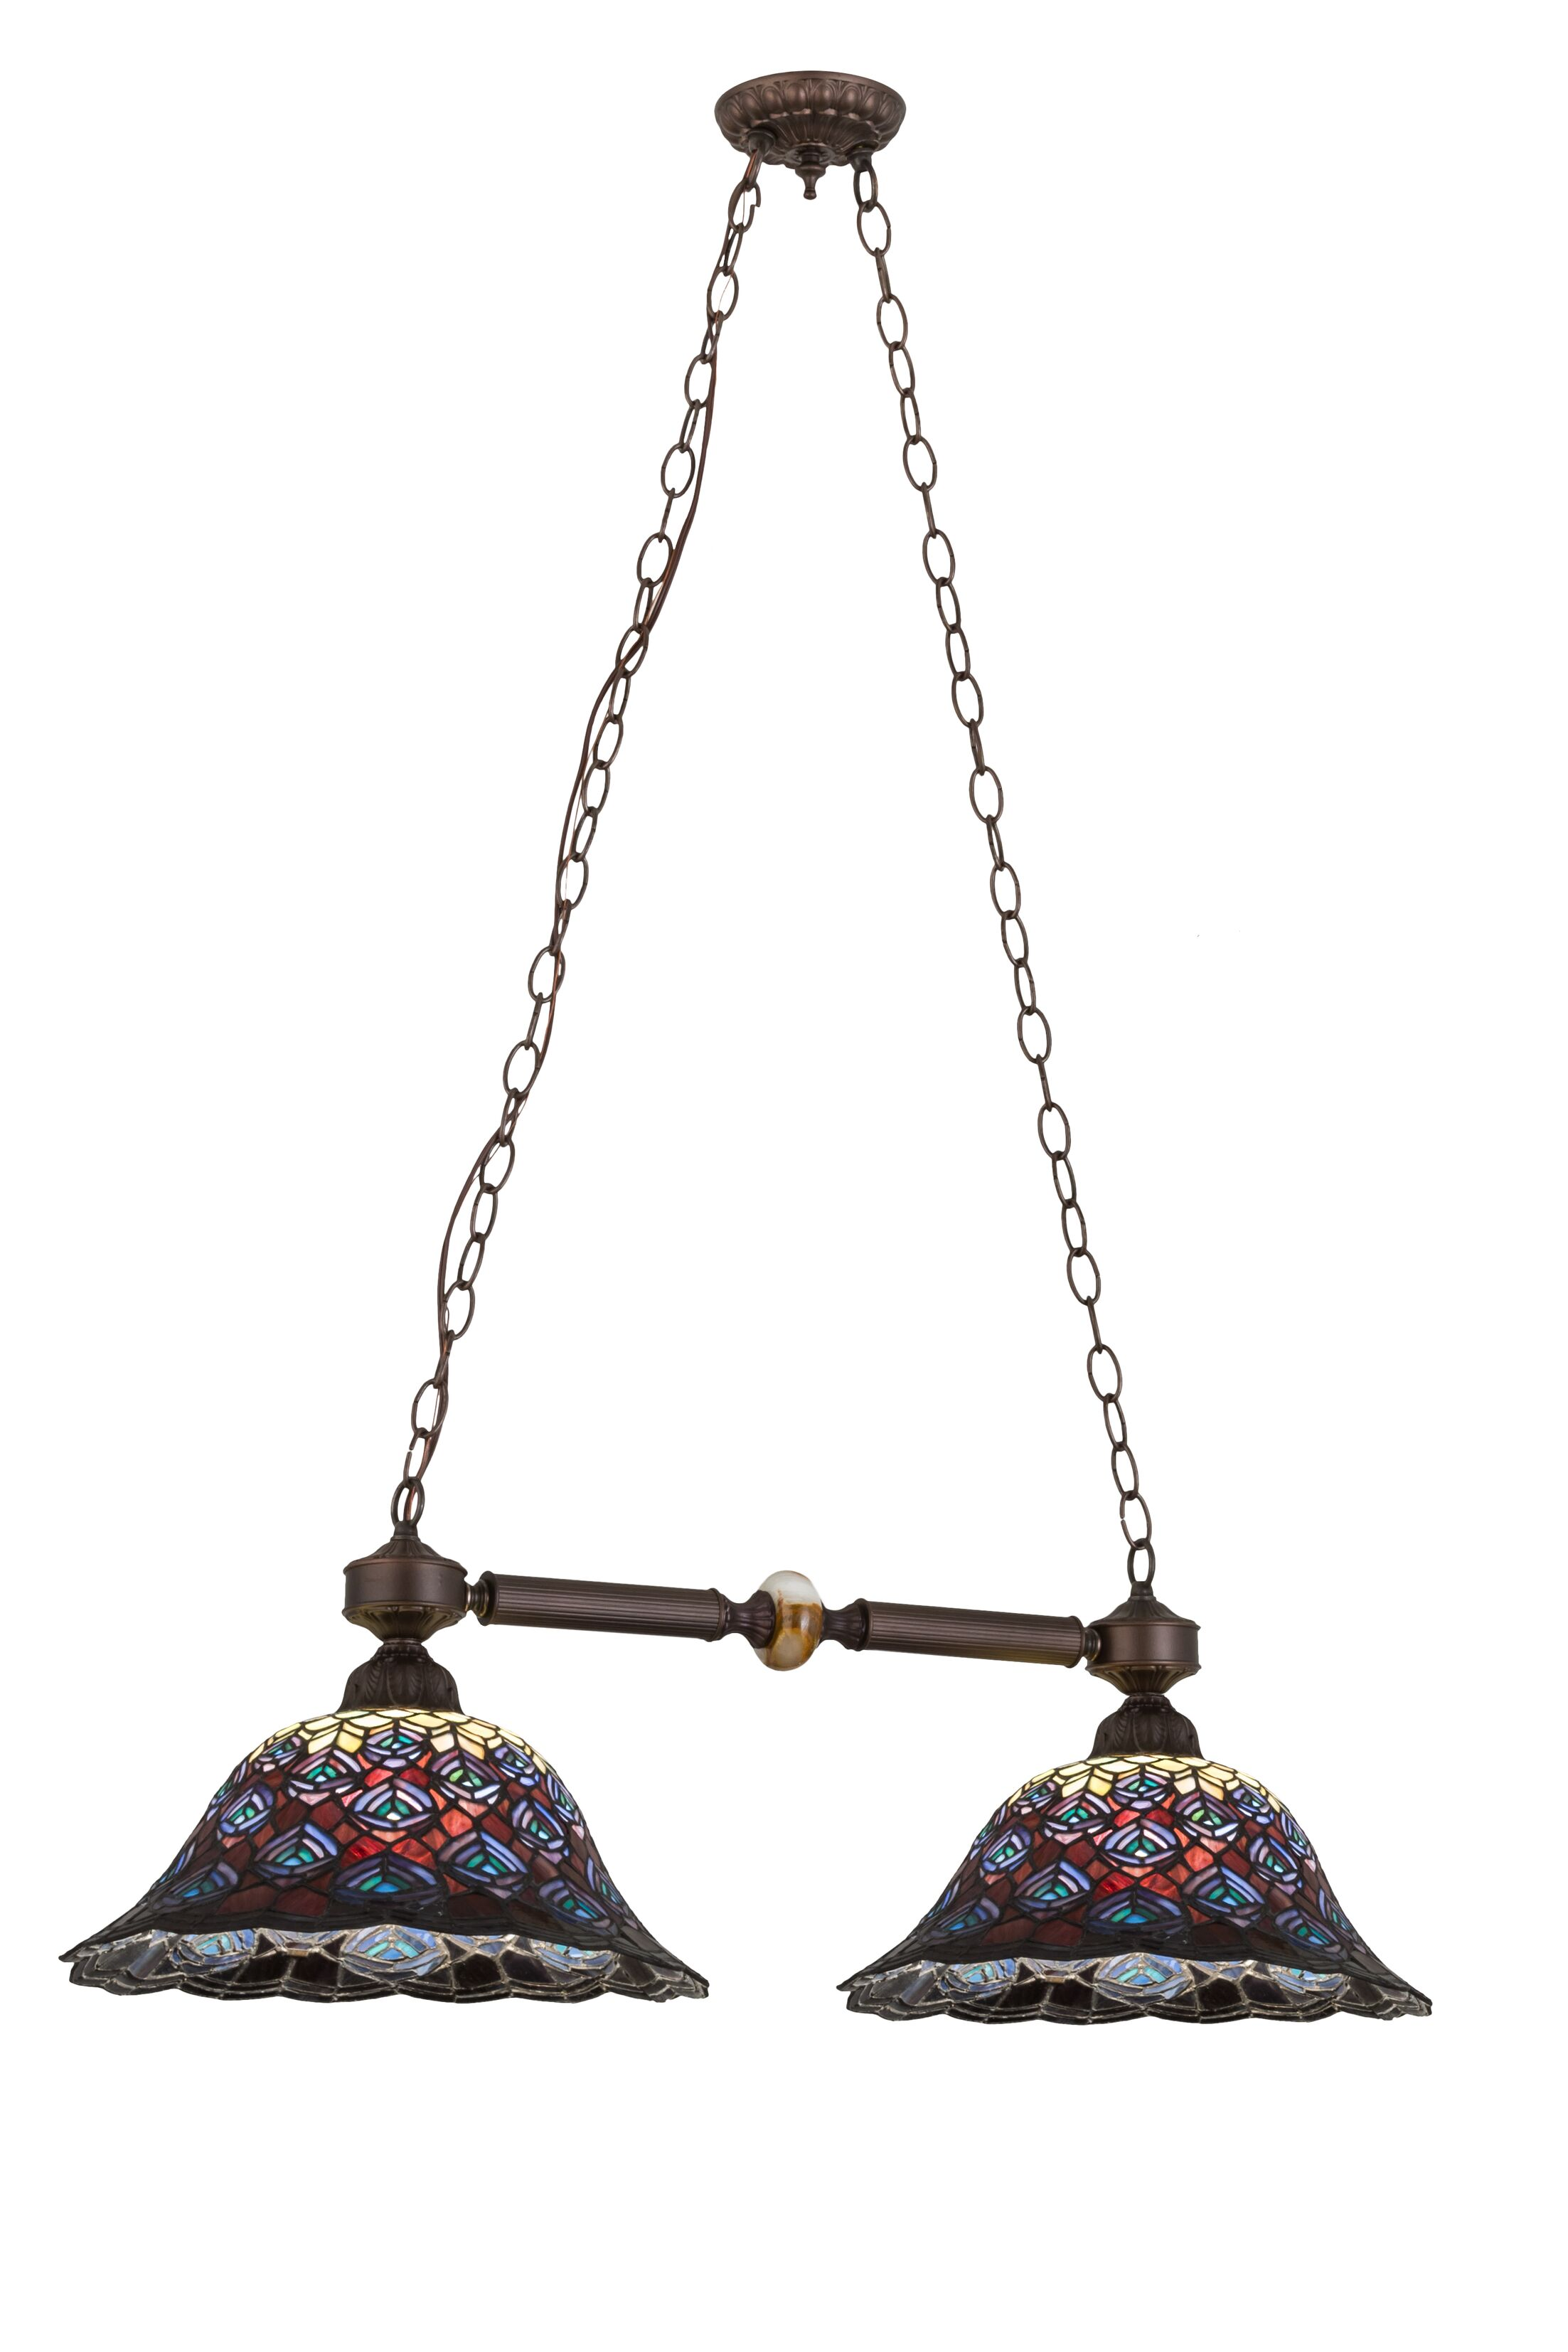 Tiffany Peacock Feather 2-Light Pool Table Light